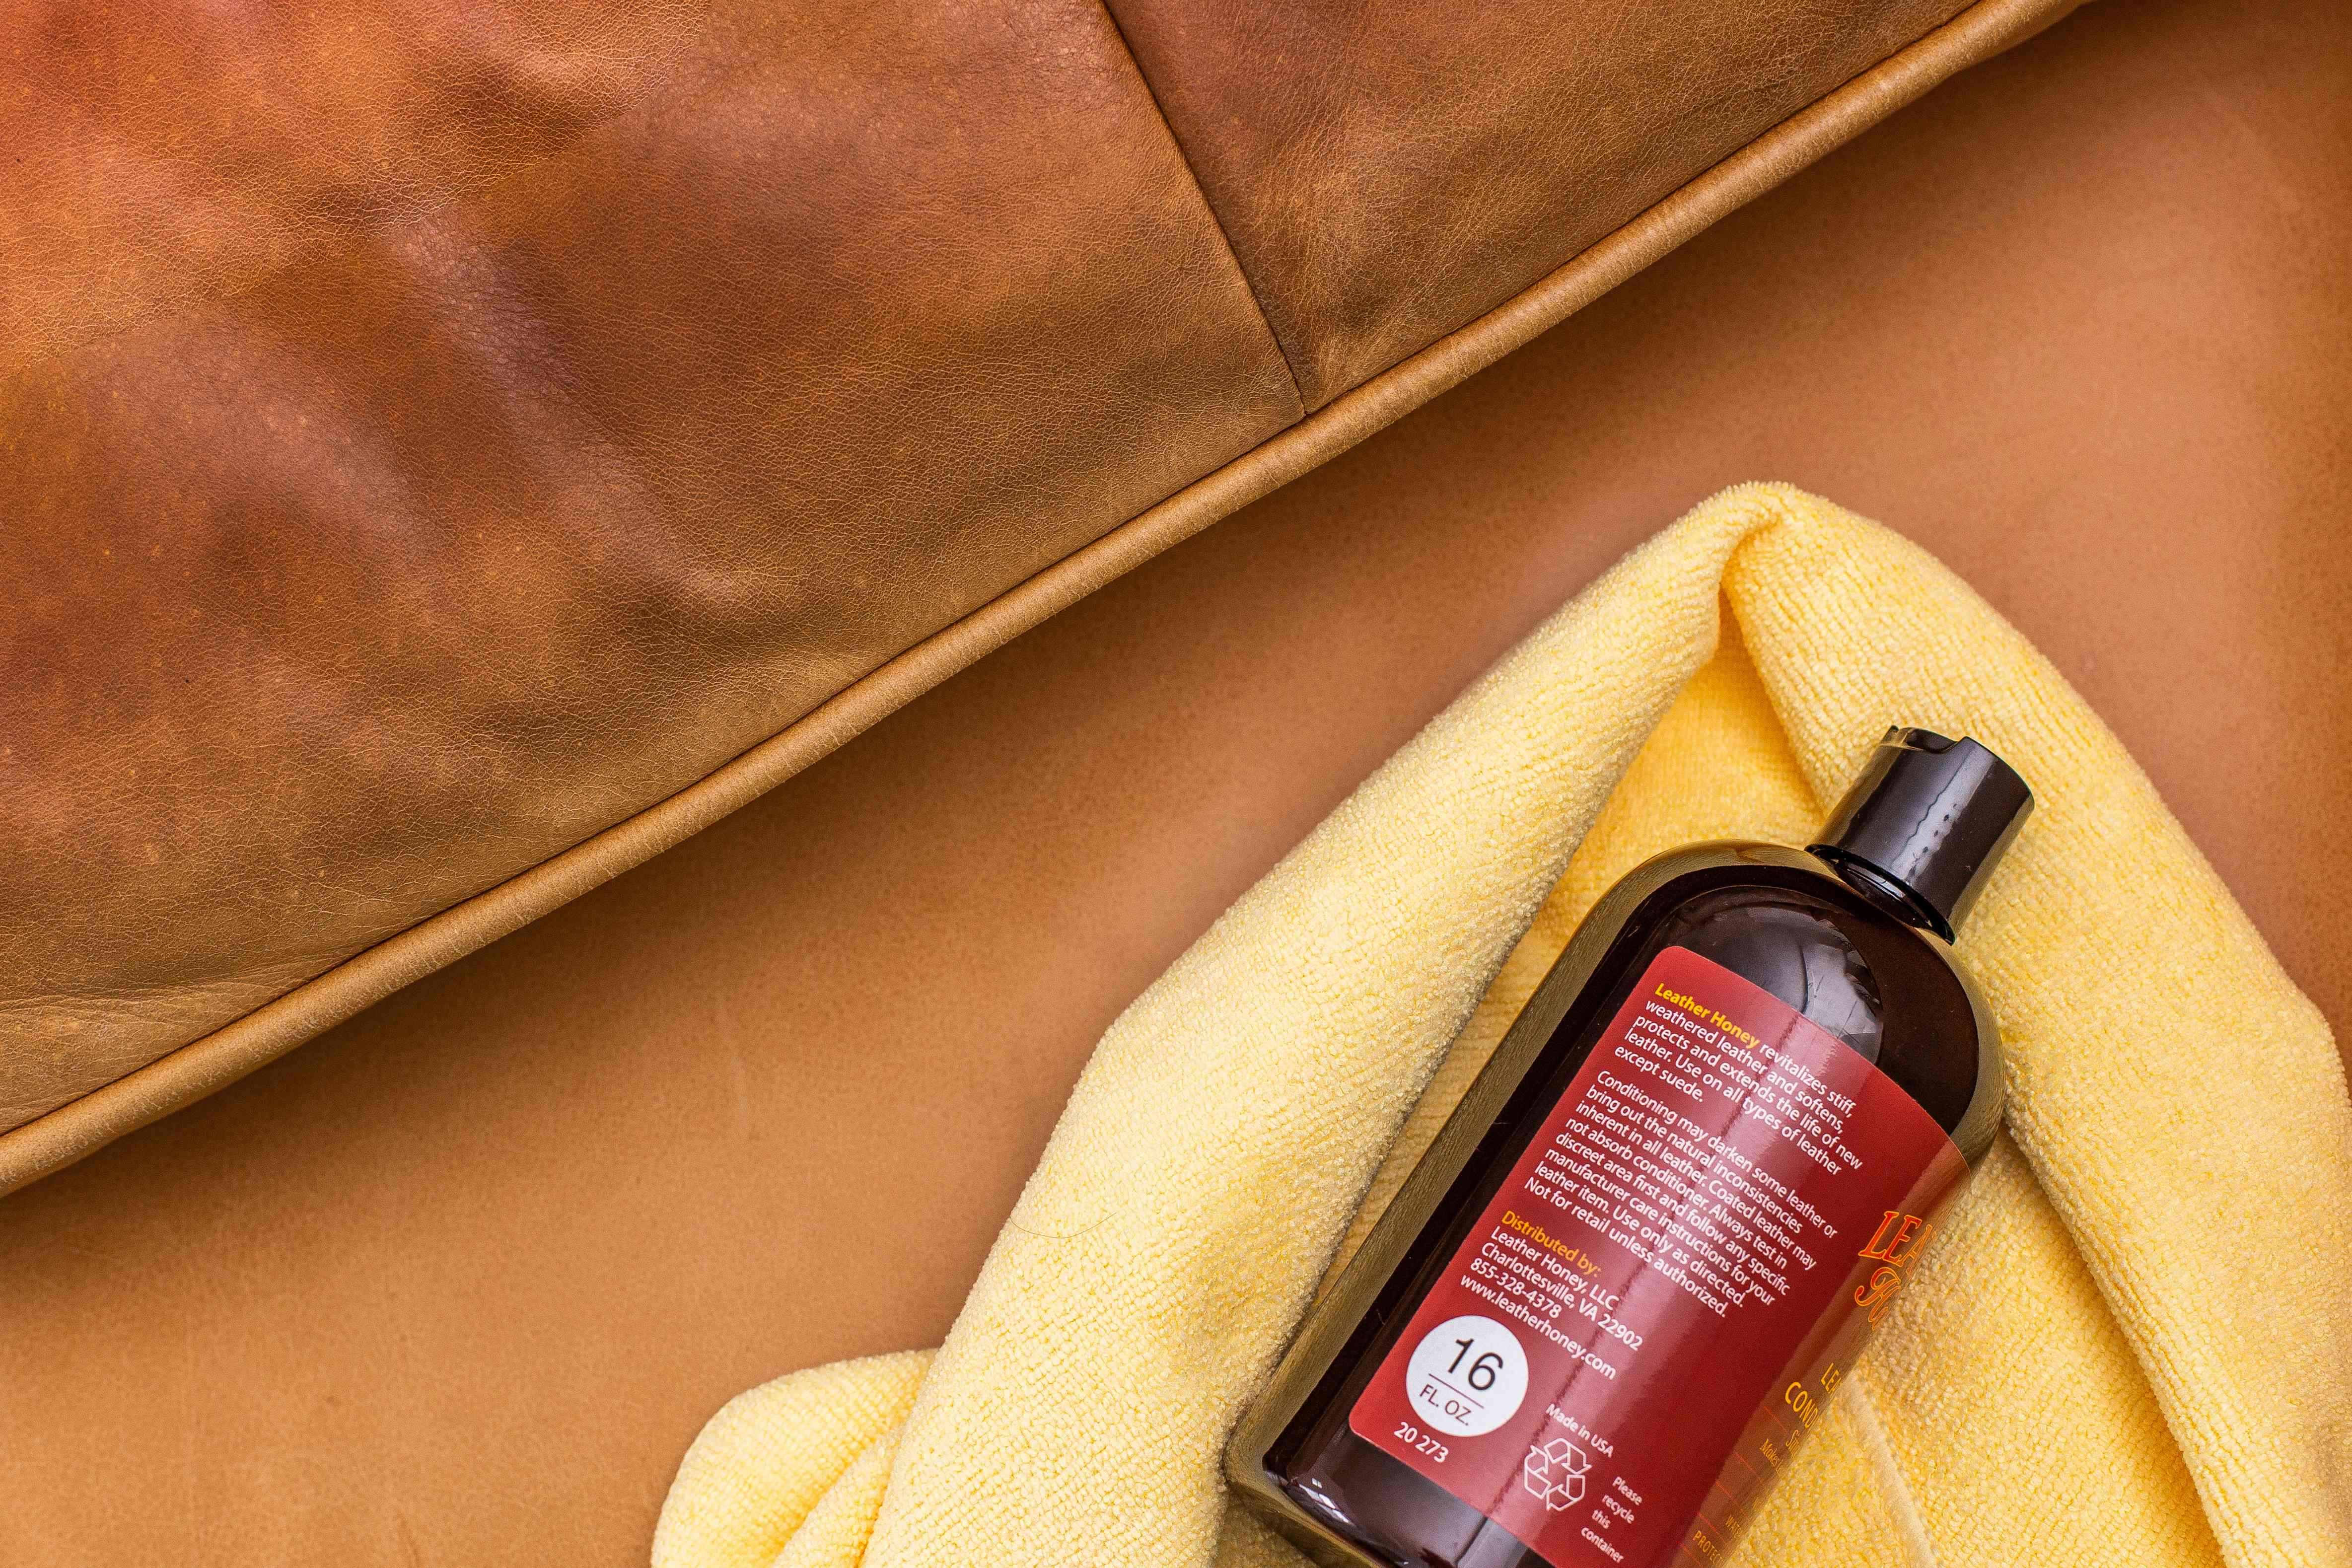 Commercial leather conditioner bottle on yellow microfiber on brown leather couch to restore suppleness